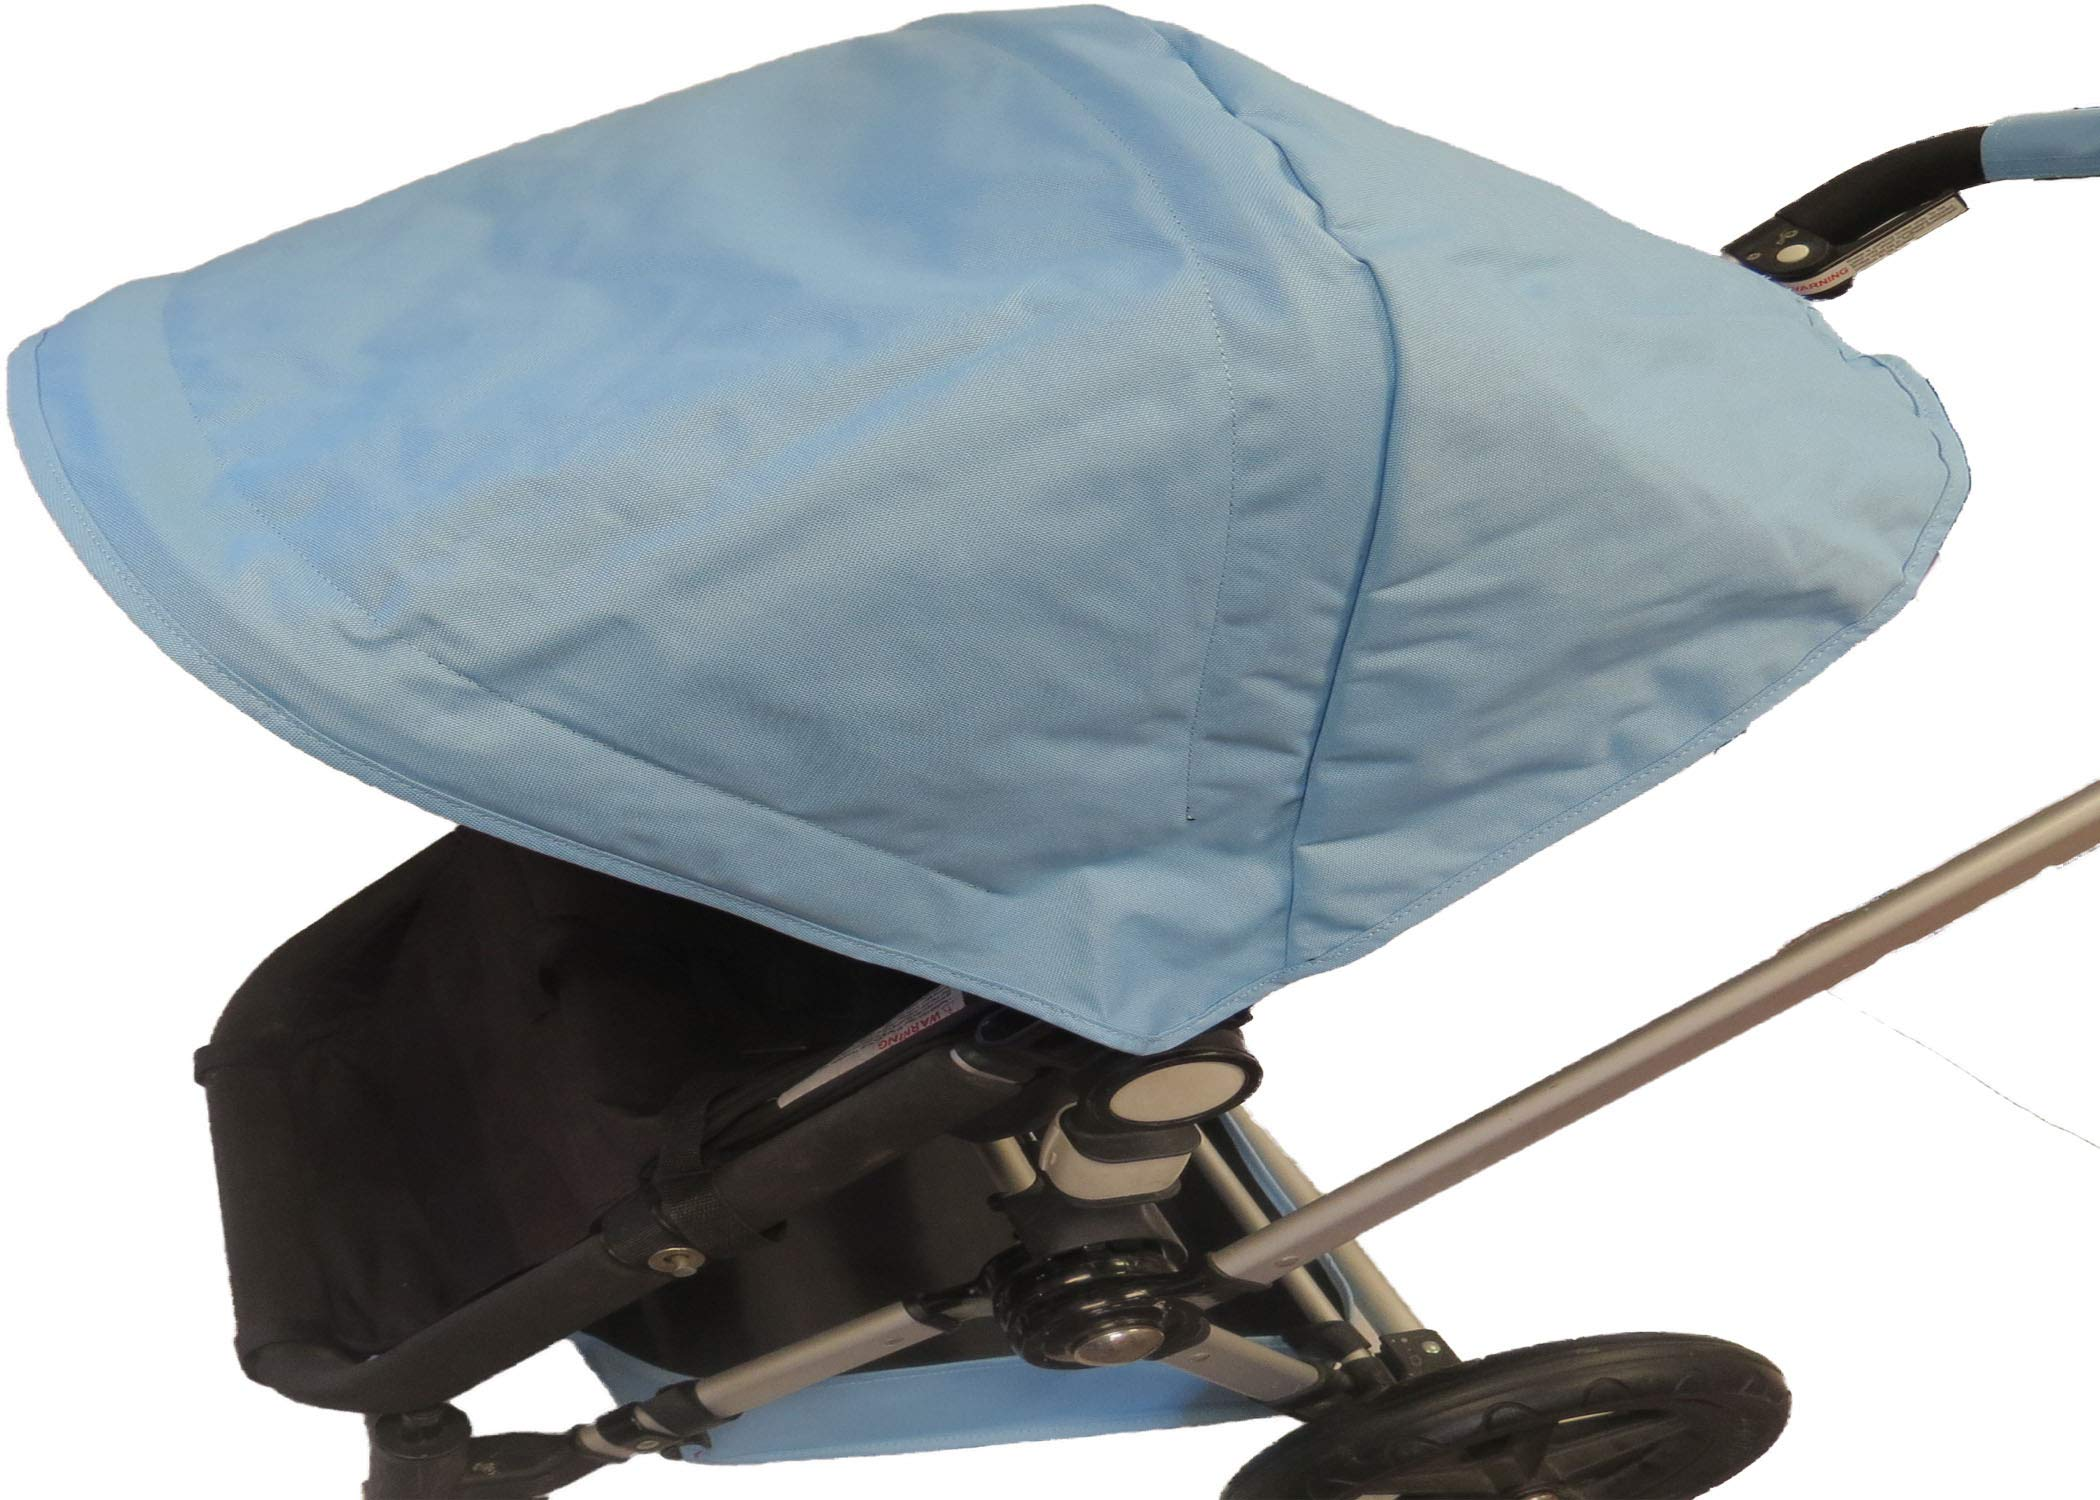 Light Blue Sun Shade Canopy Hood Cover Umbrella with Wires for Bugaboo Cameleon 1, 2, 3, Frog Baby Child Strollers